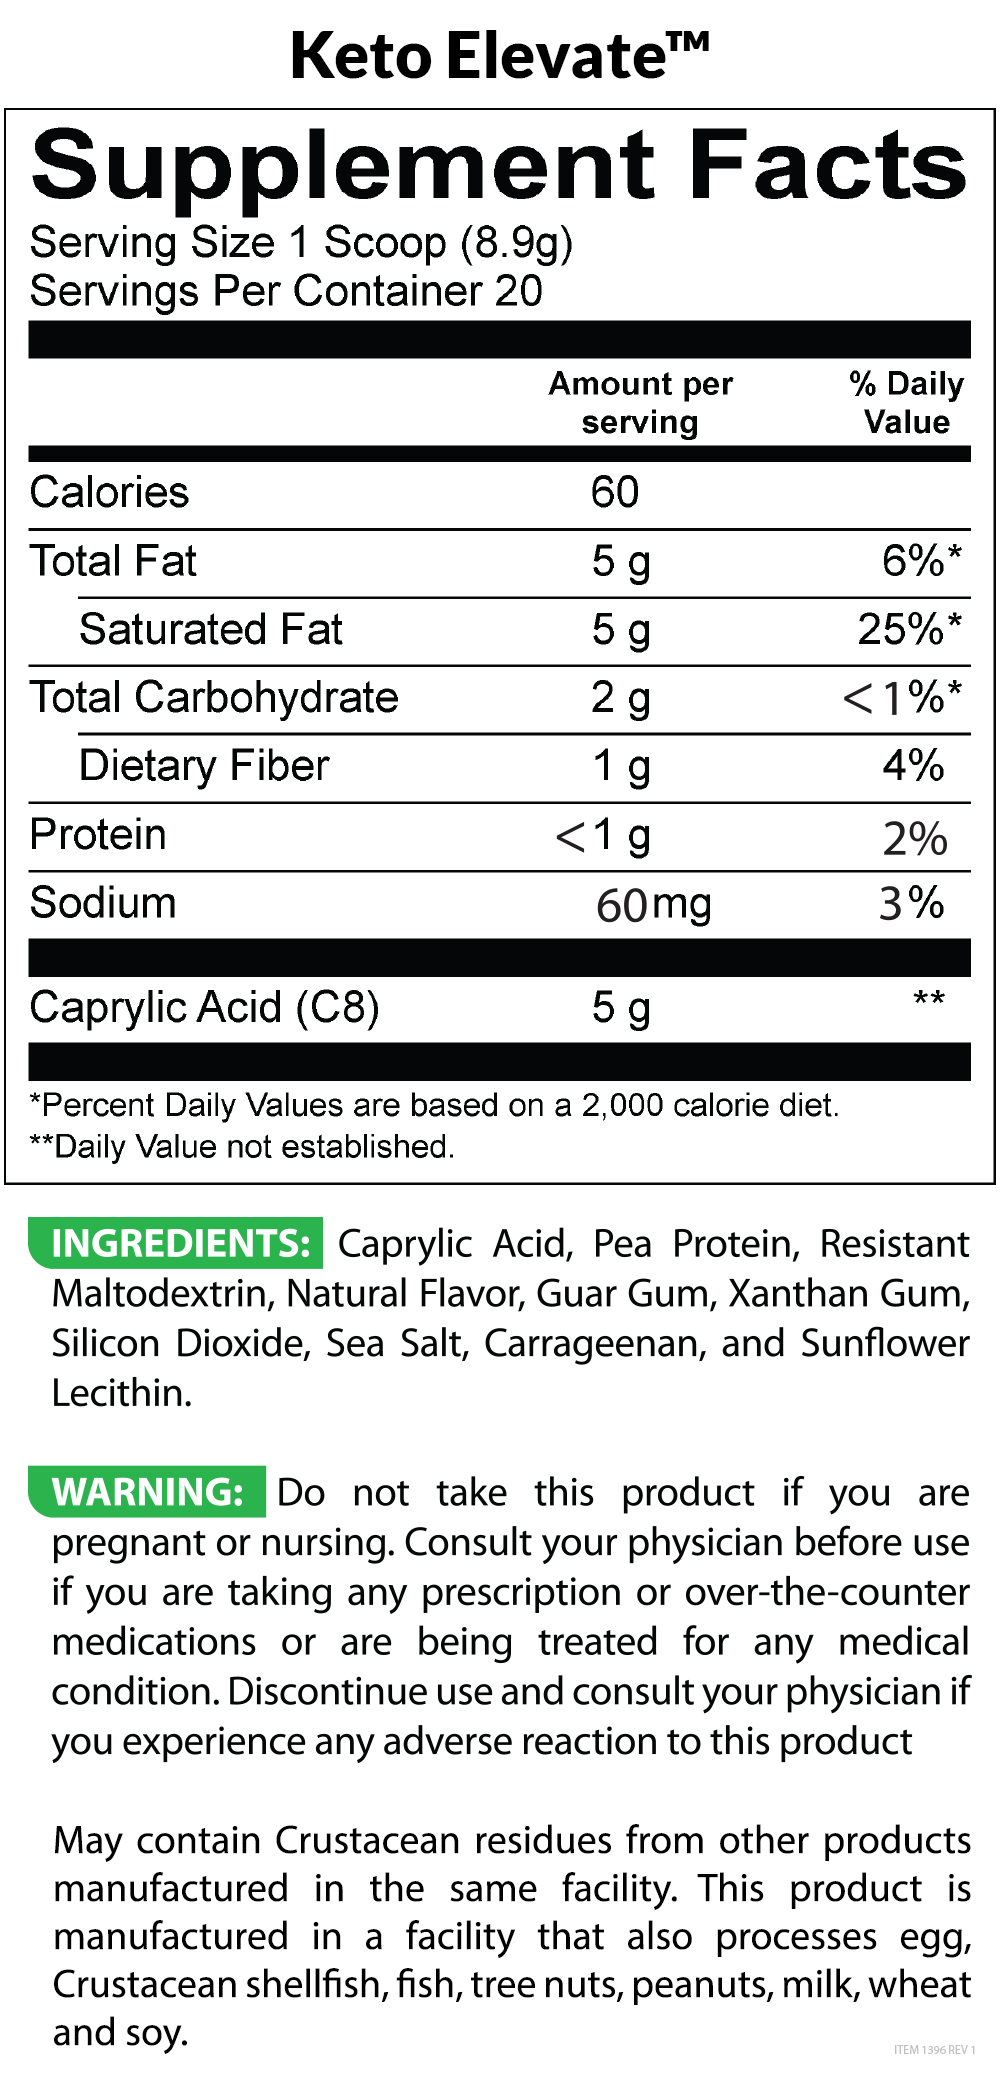 Keto Elevate Supplement Facts